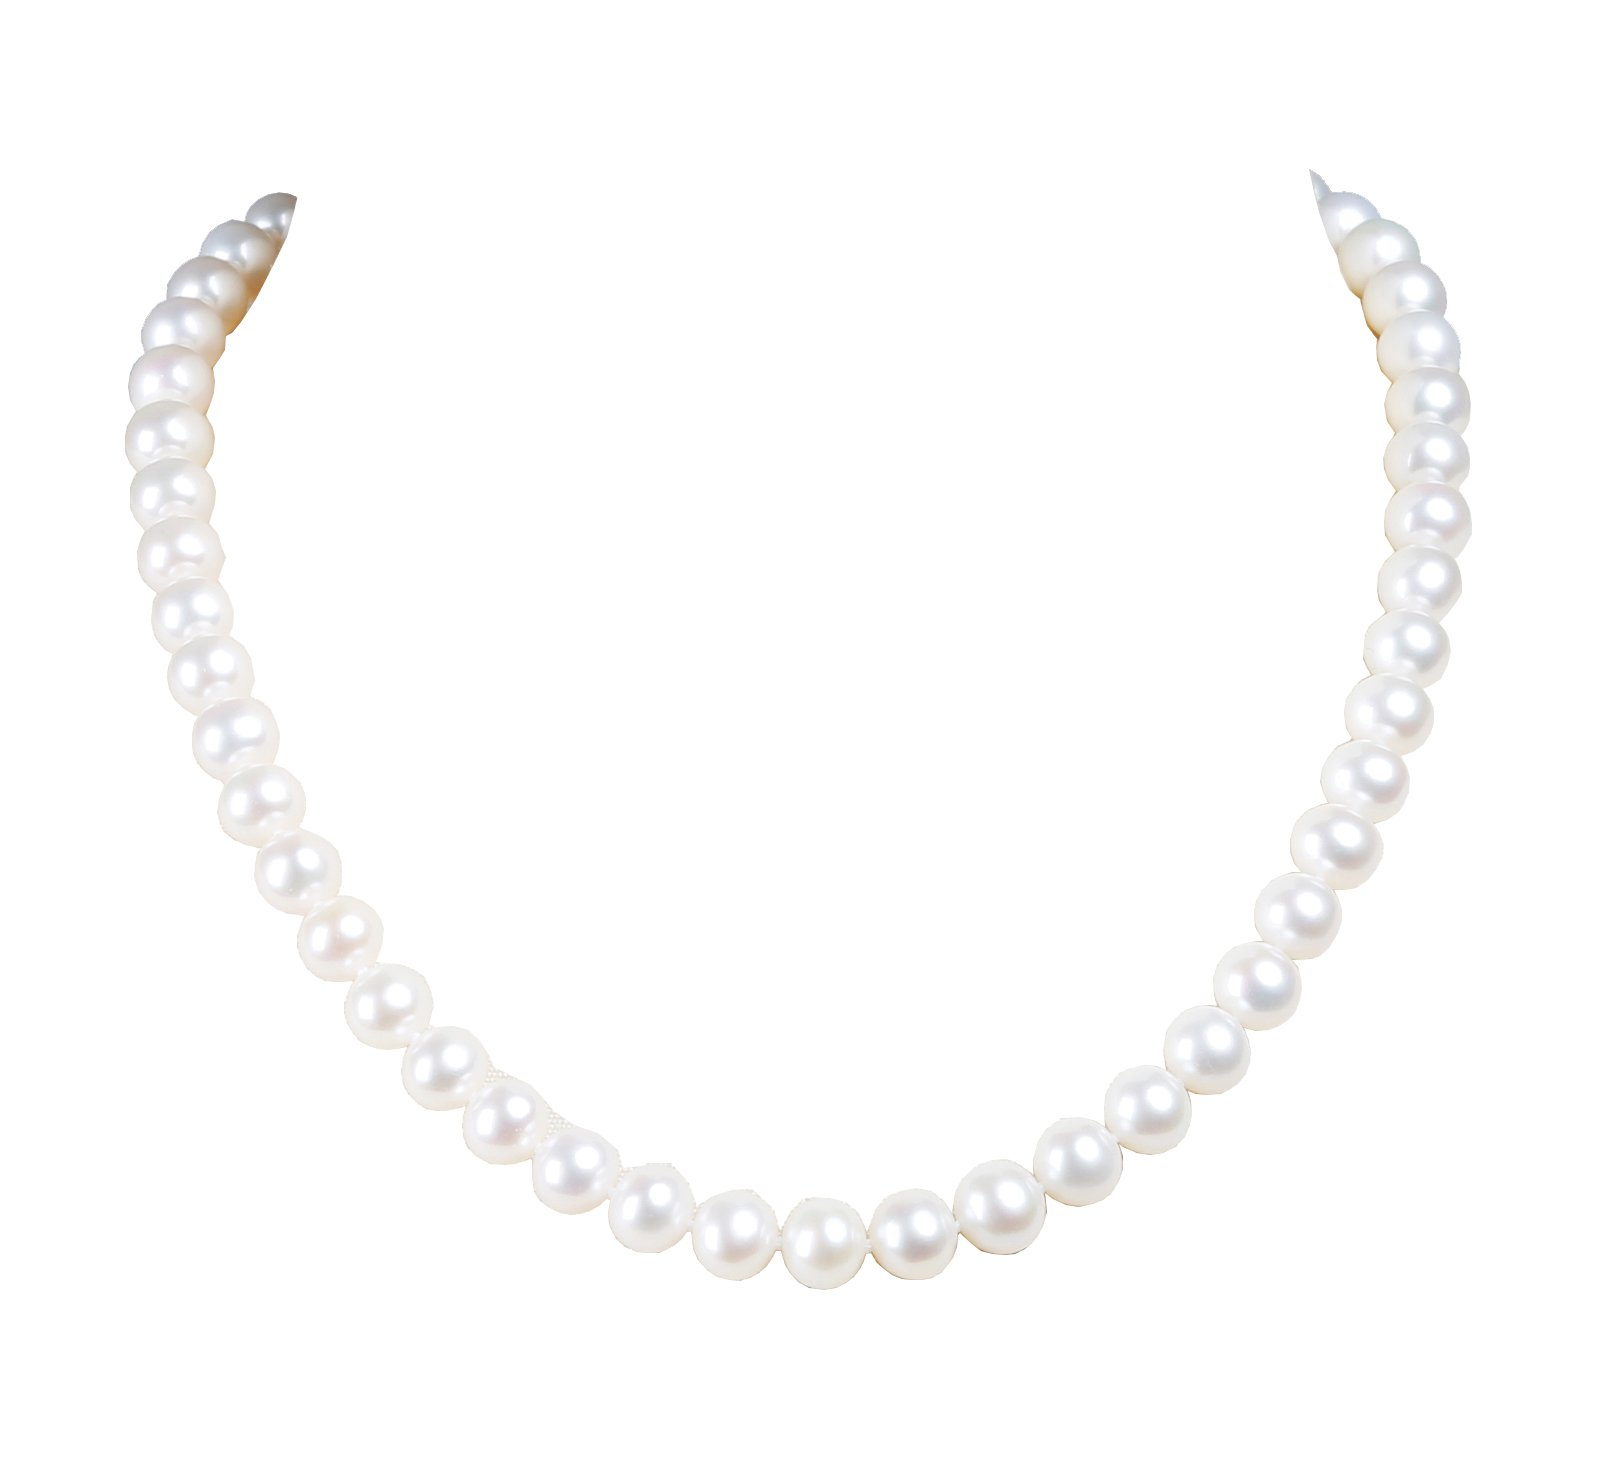 AIDNI AAA Quality Freshwater Cultured White Round Pearl Necklace, Prince Length 18.5'' (7.5-8.5mm)